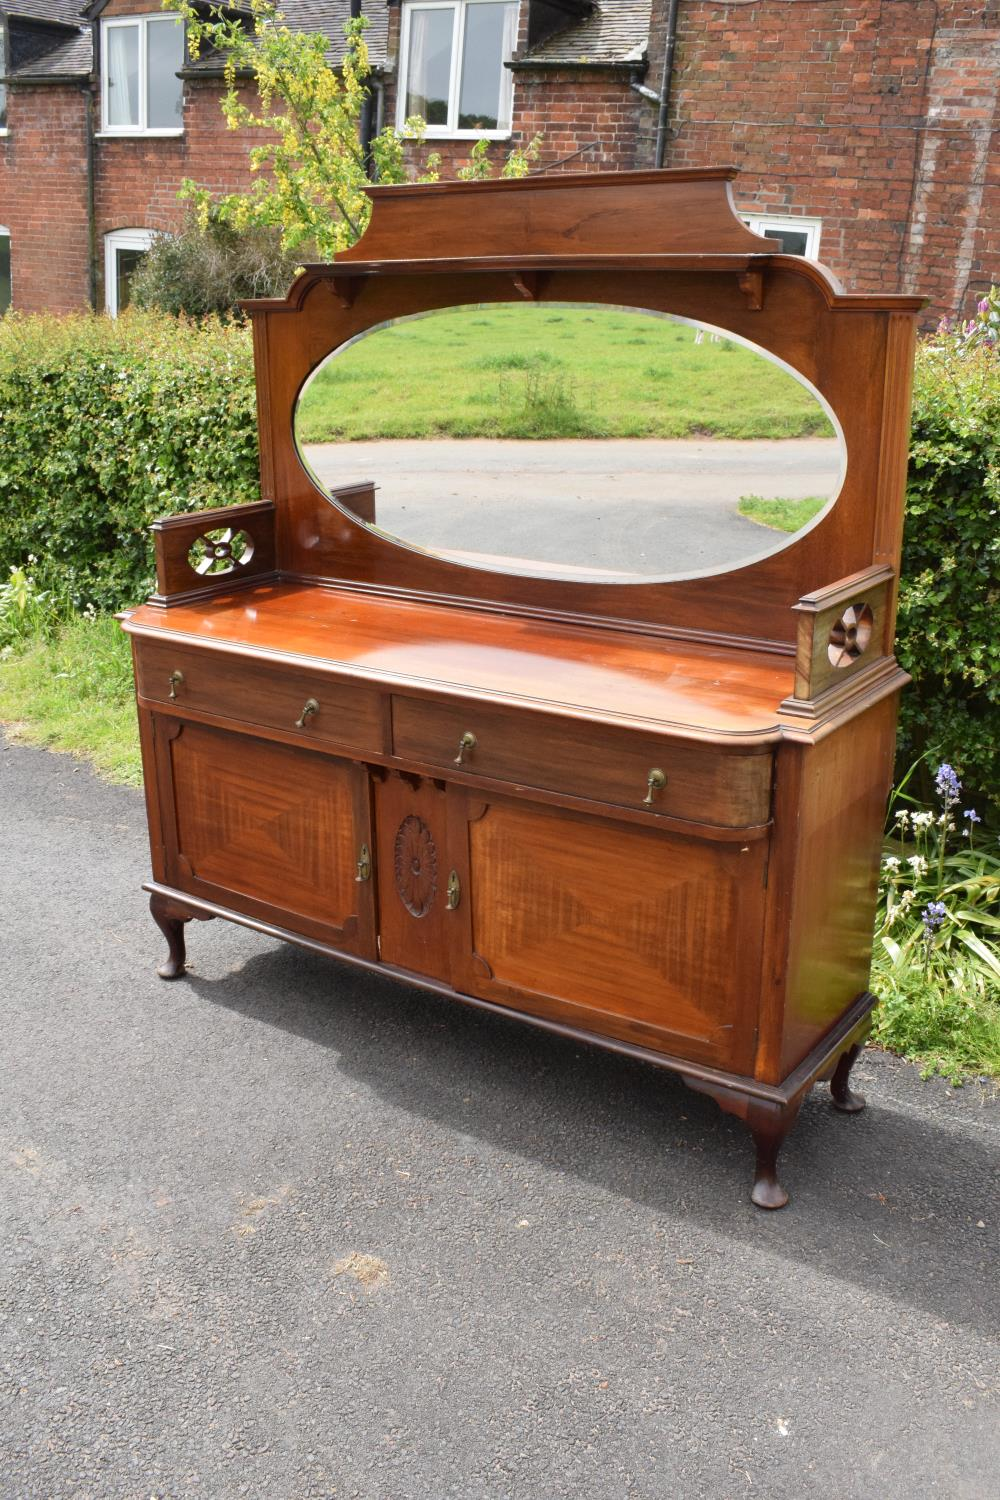 Edwardian mirror backed sideboard/ drinks cabinet. 168 x 56 x 183cm. The top section lifts off and